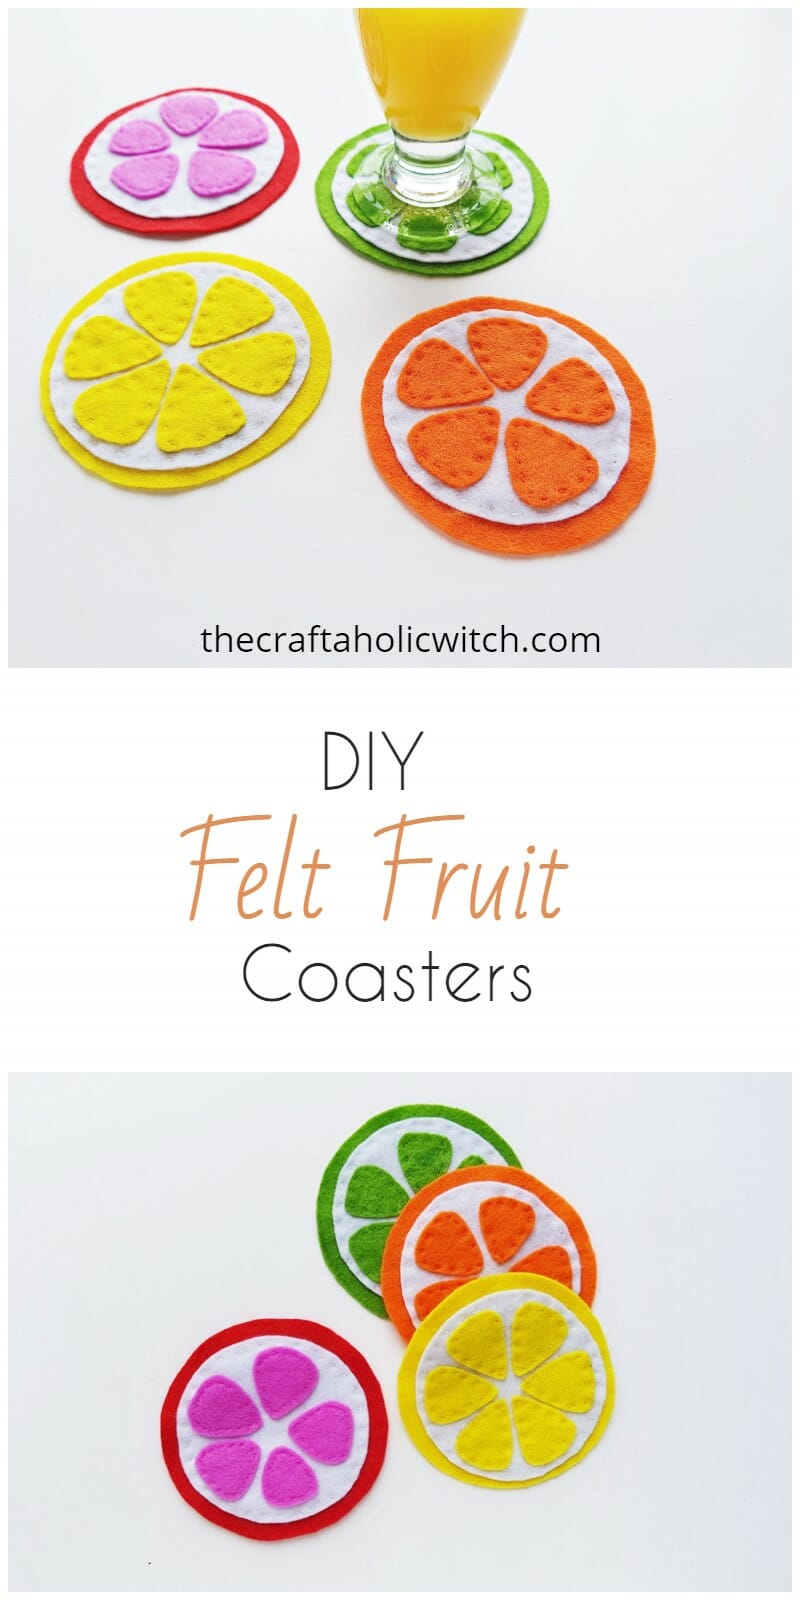 Fruit coasters DIY